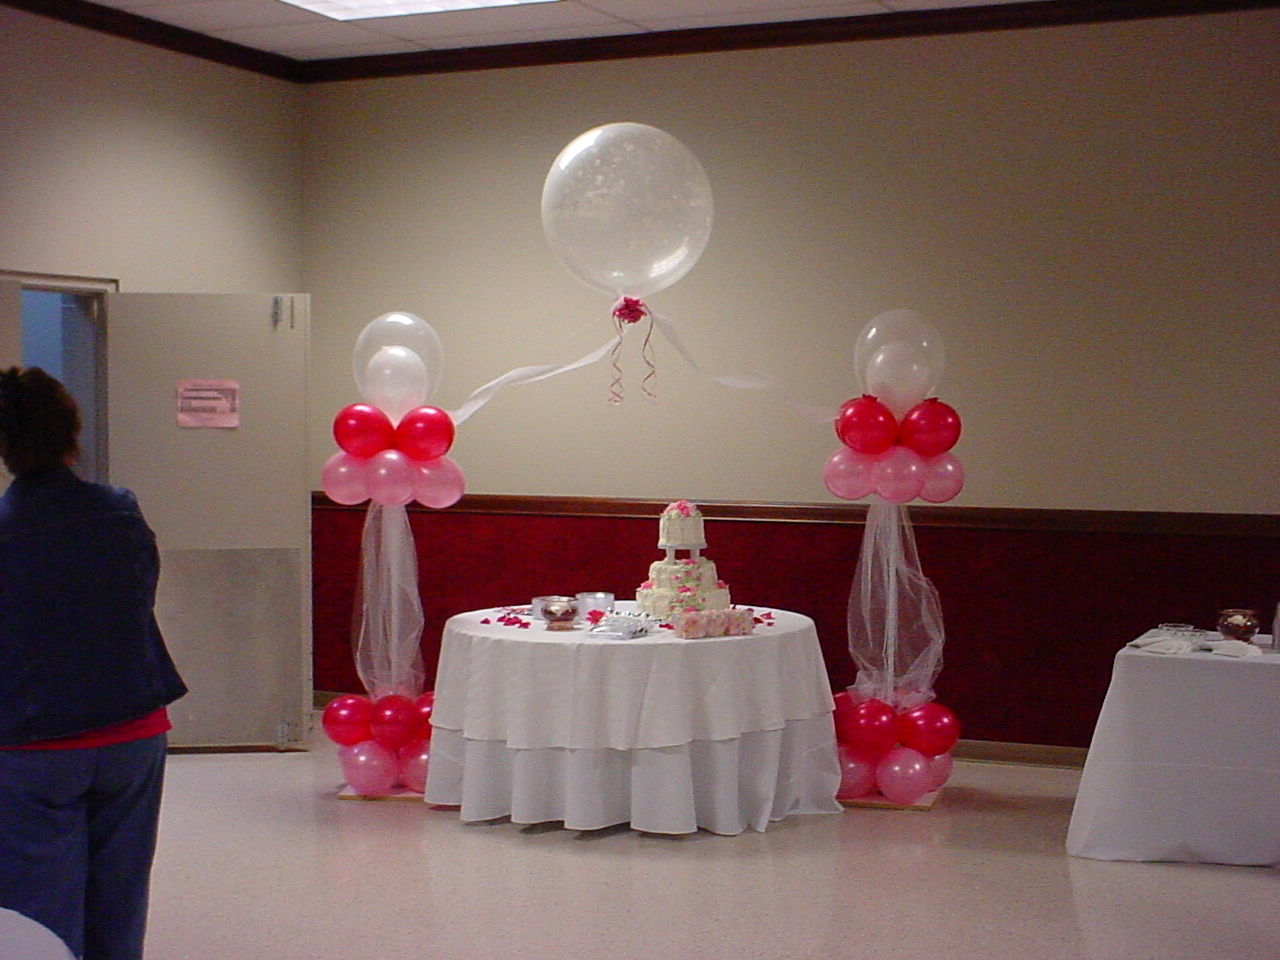 Balloon designs pictures balloon decor for Balloon decoration ideas for weddings